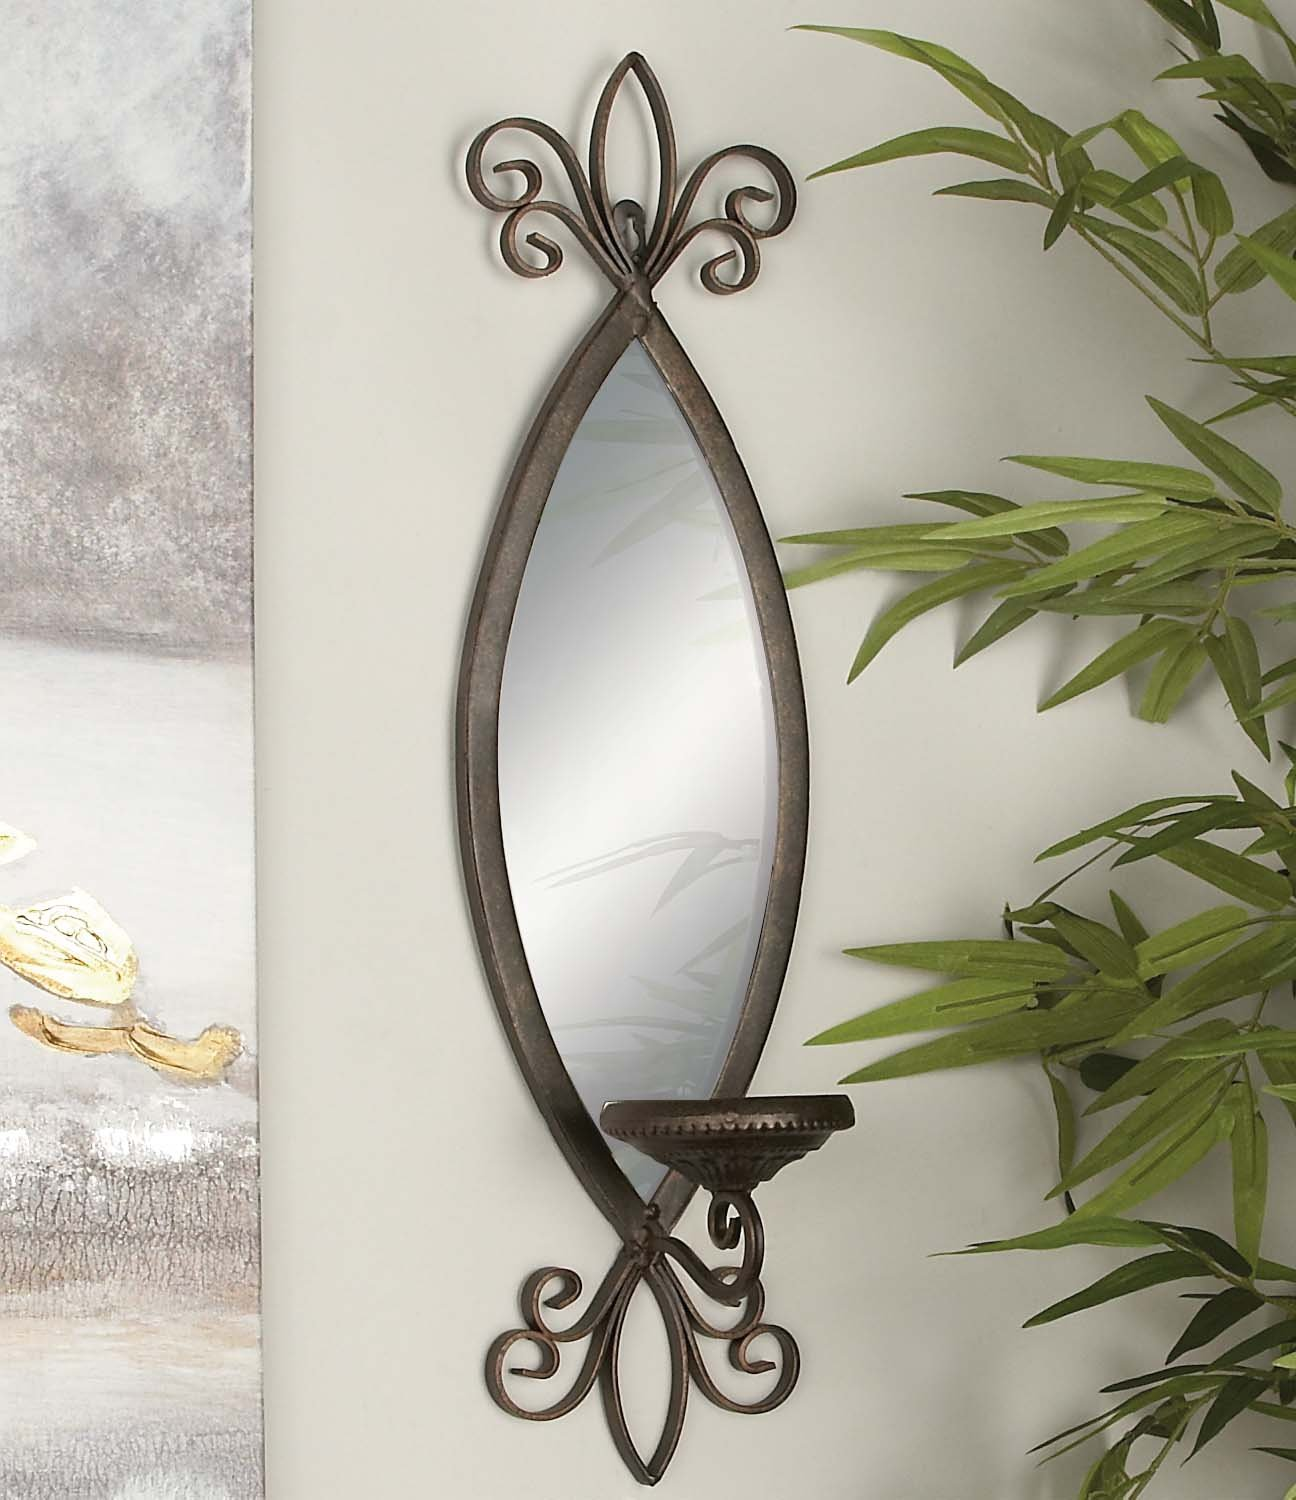 Deco 79 93739 Metal & Mirror Candle Sconce by Deco 79